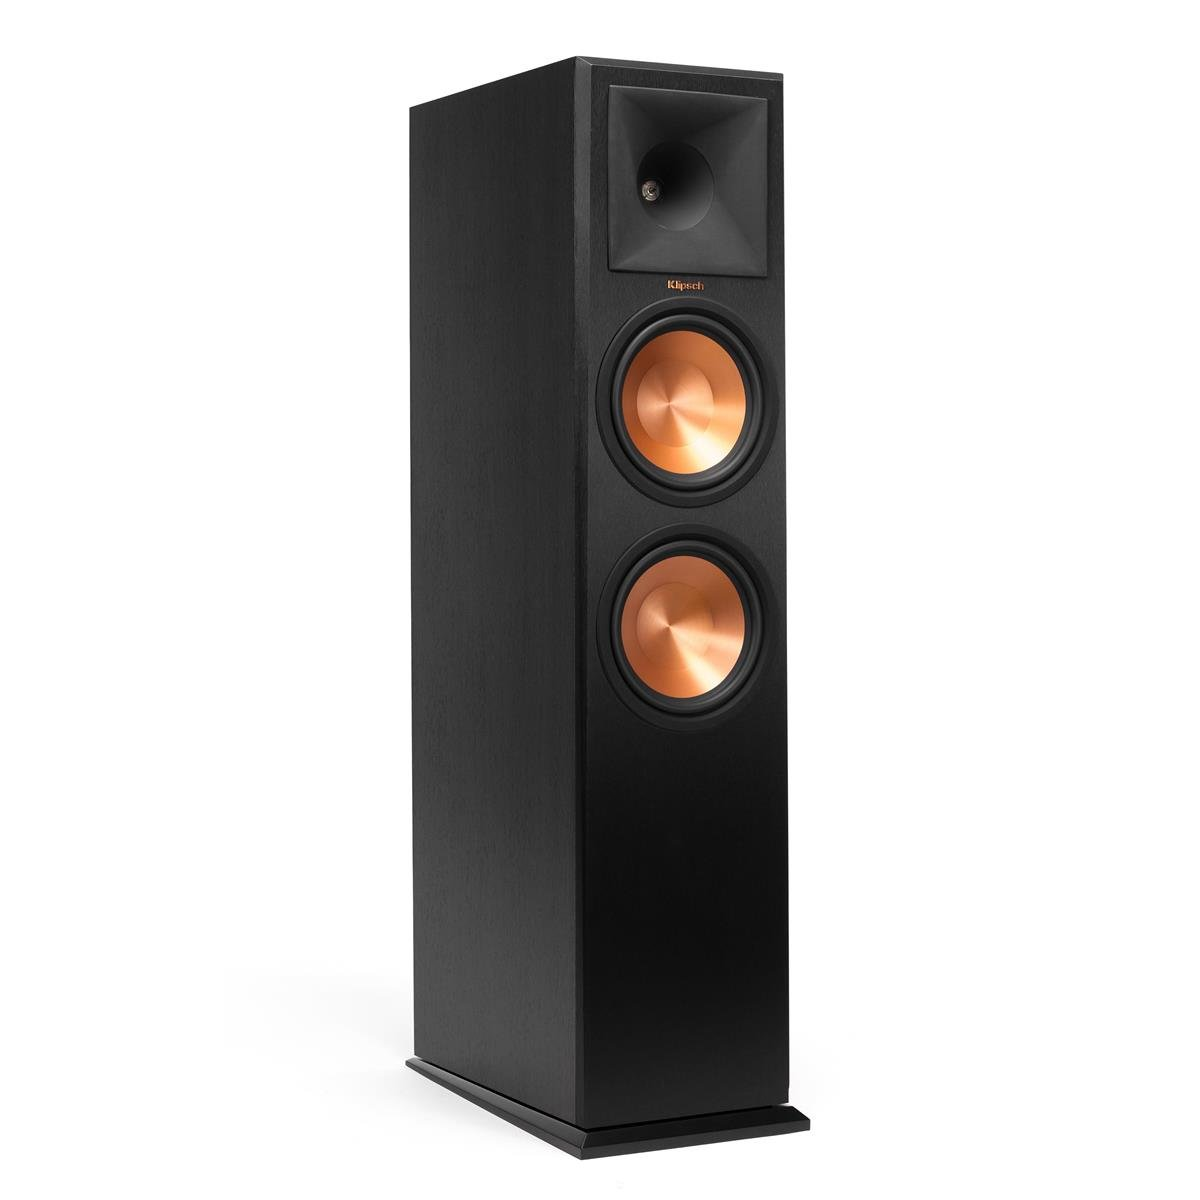 klipsch wireless speakers. amazon.com: klipsch 5.1 rp-280 reference premiere speaker package with r-115sw subwoofer and a free wireless kit (ebony): electronics speakers